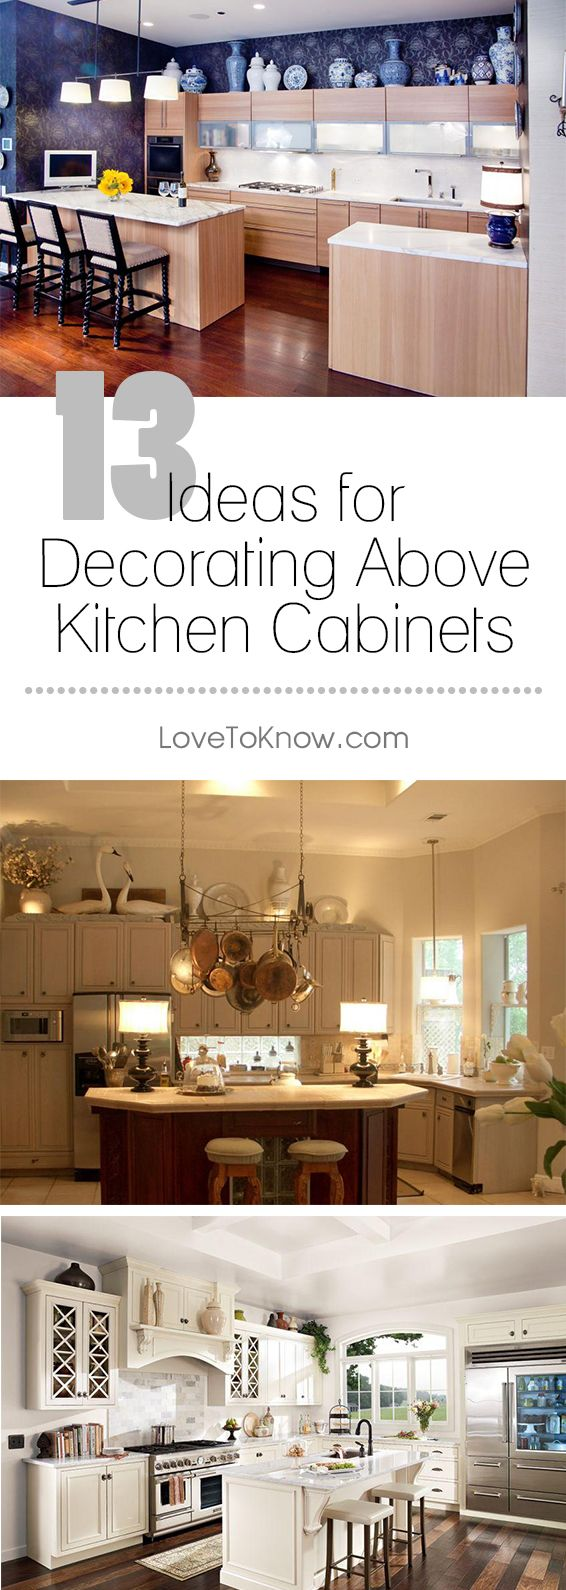 Lights Above Kitchen Cabinets 25 Best Ideas About Decorating Above Kitchen Cabinets On